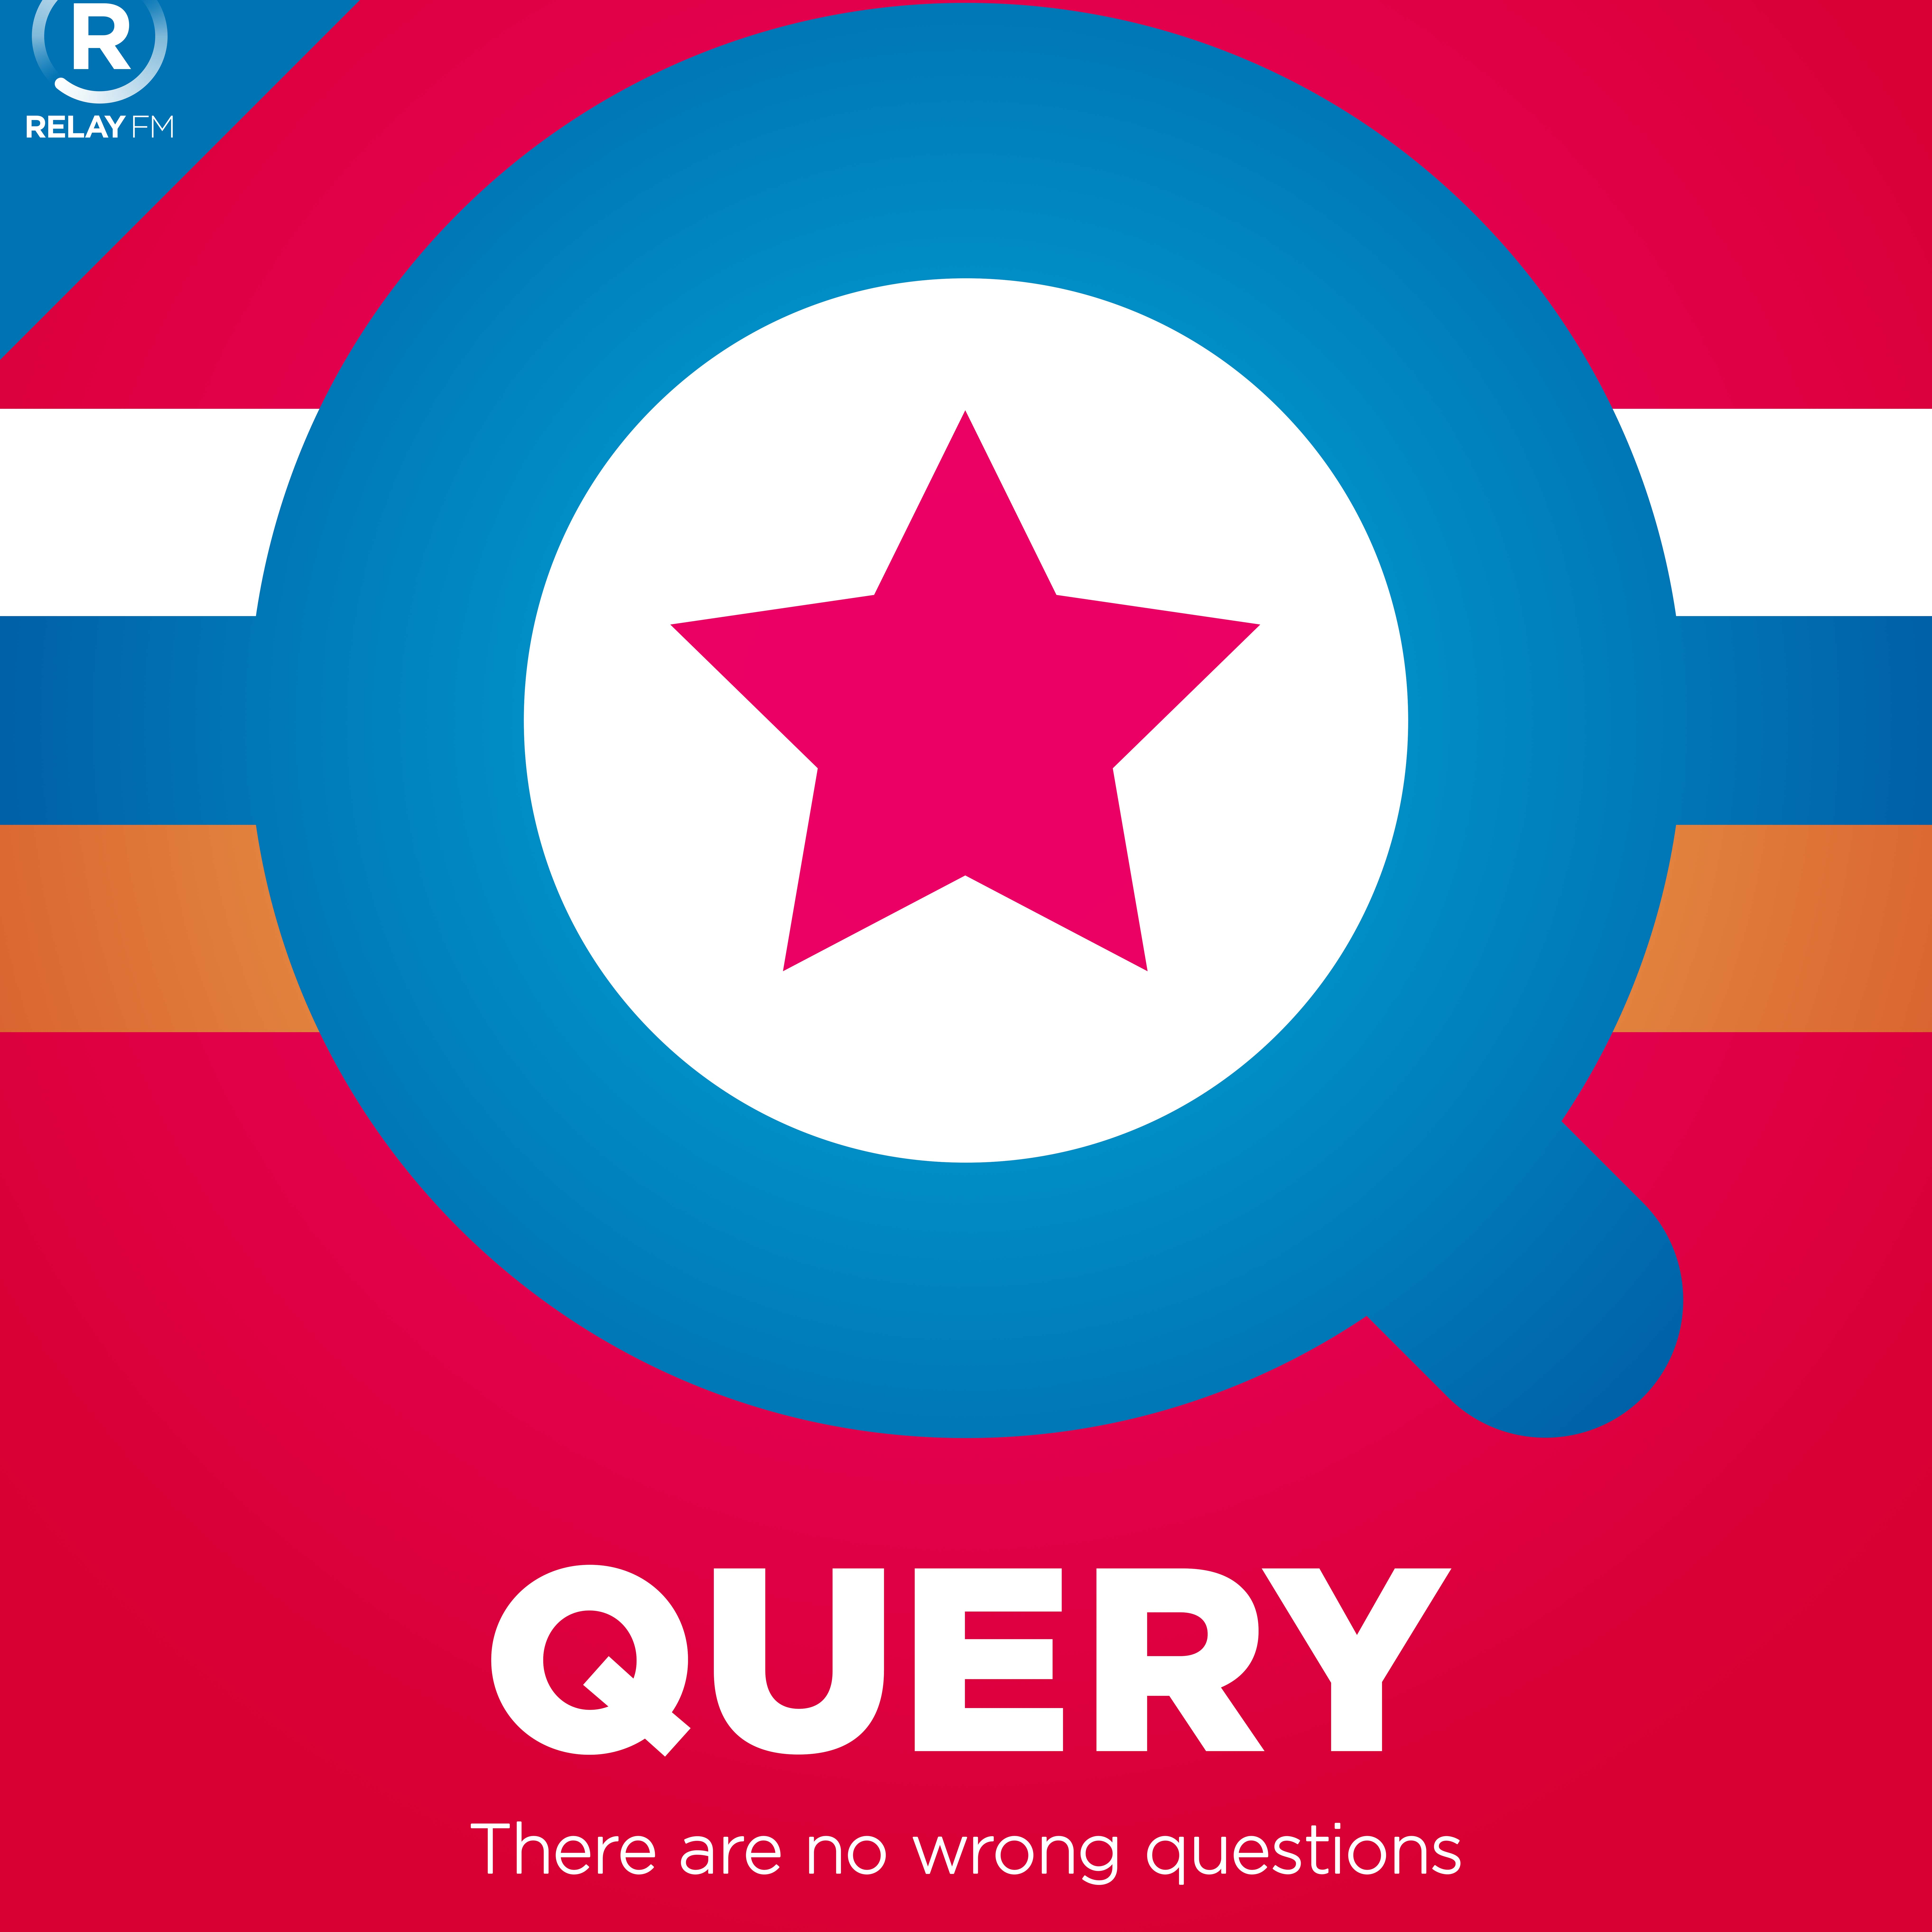 Query artwork